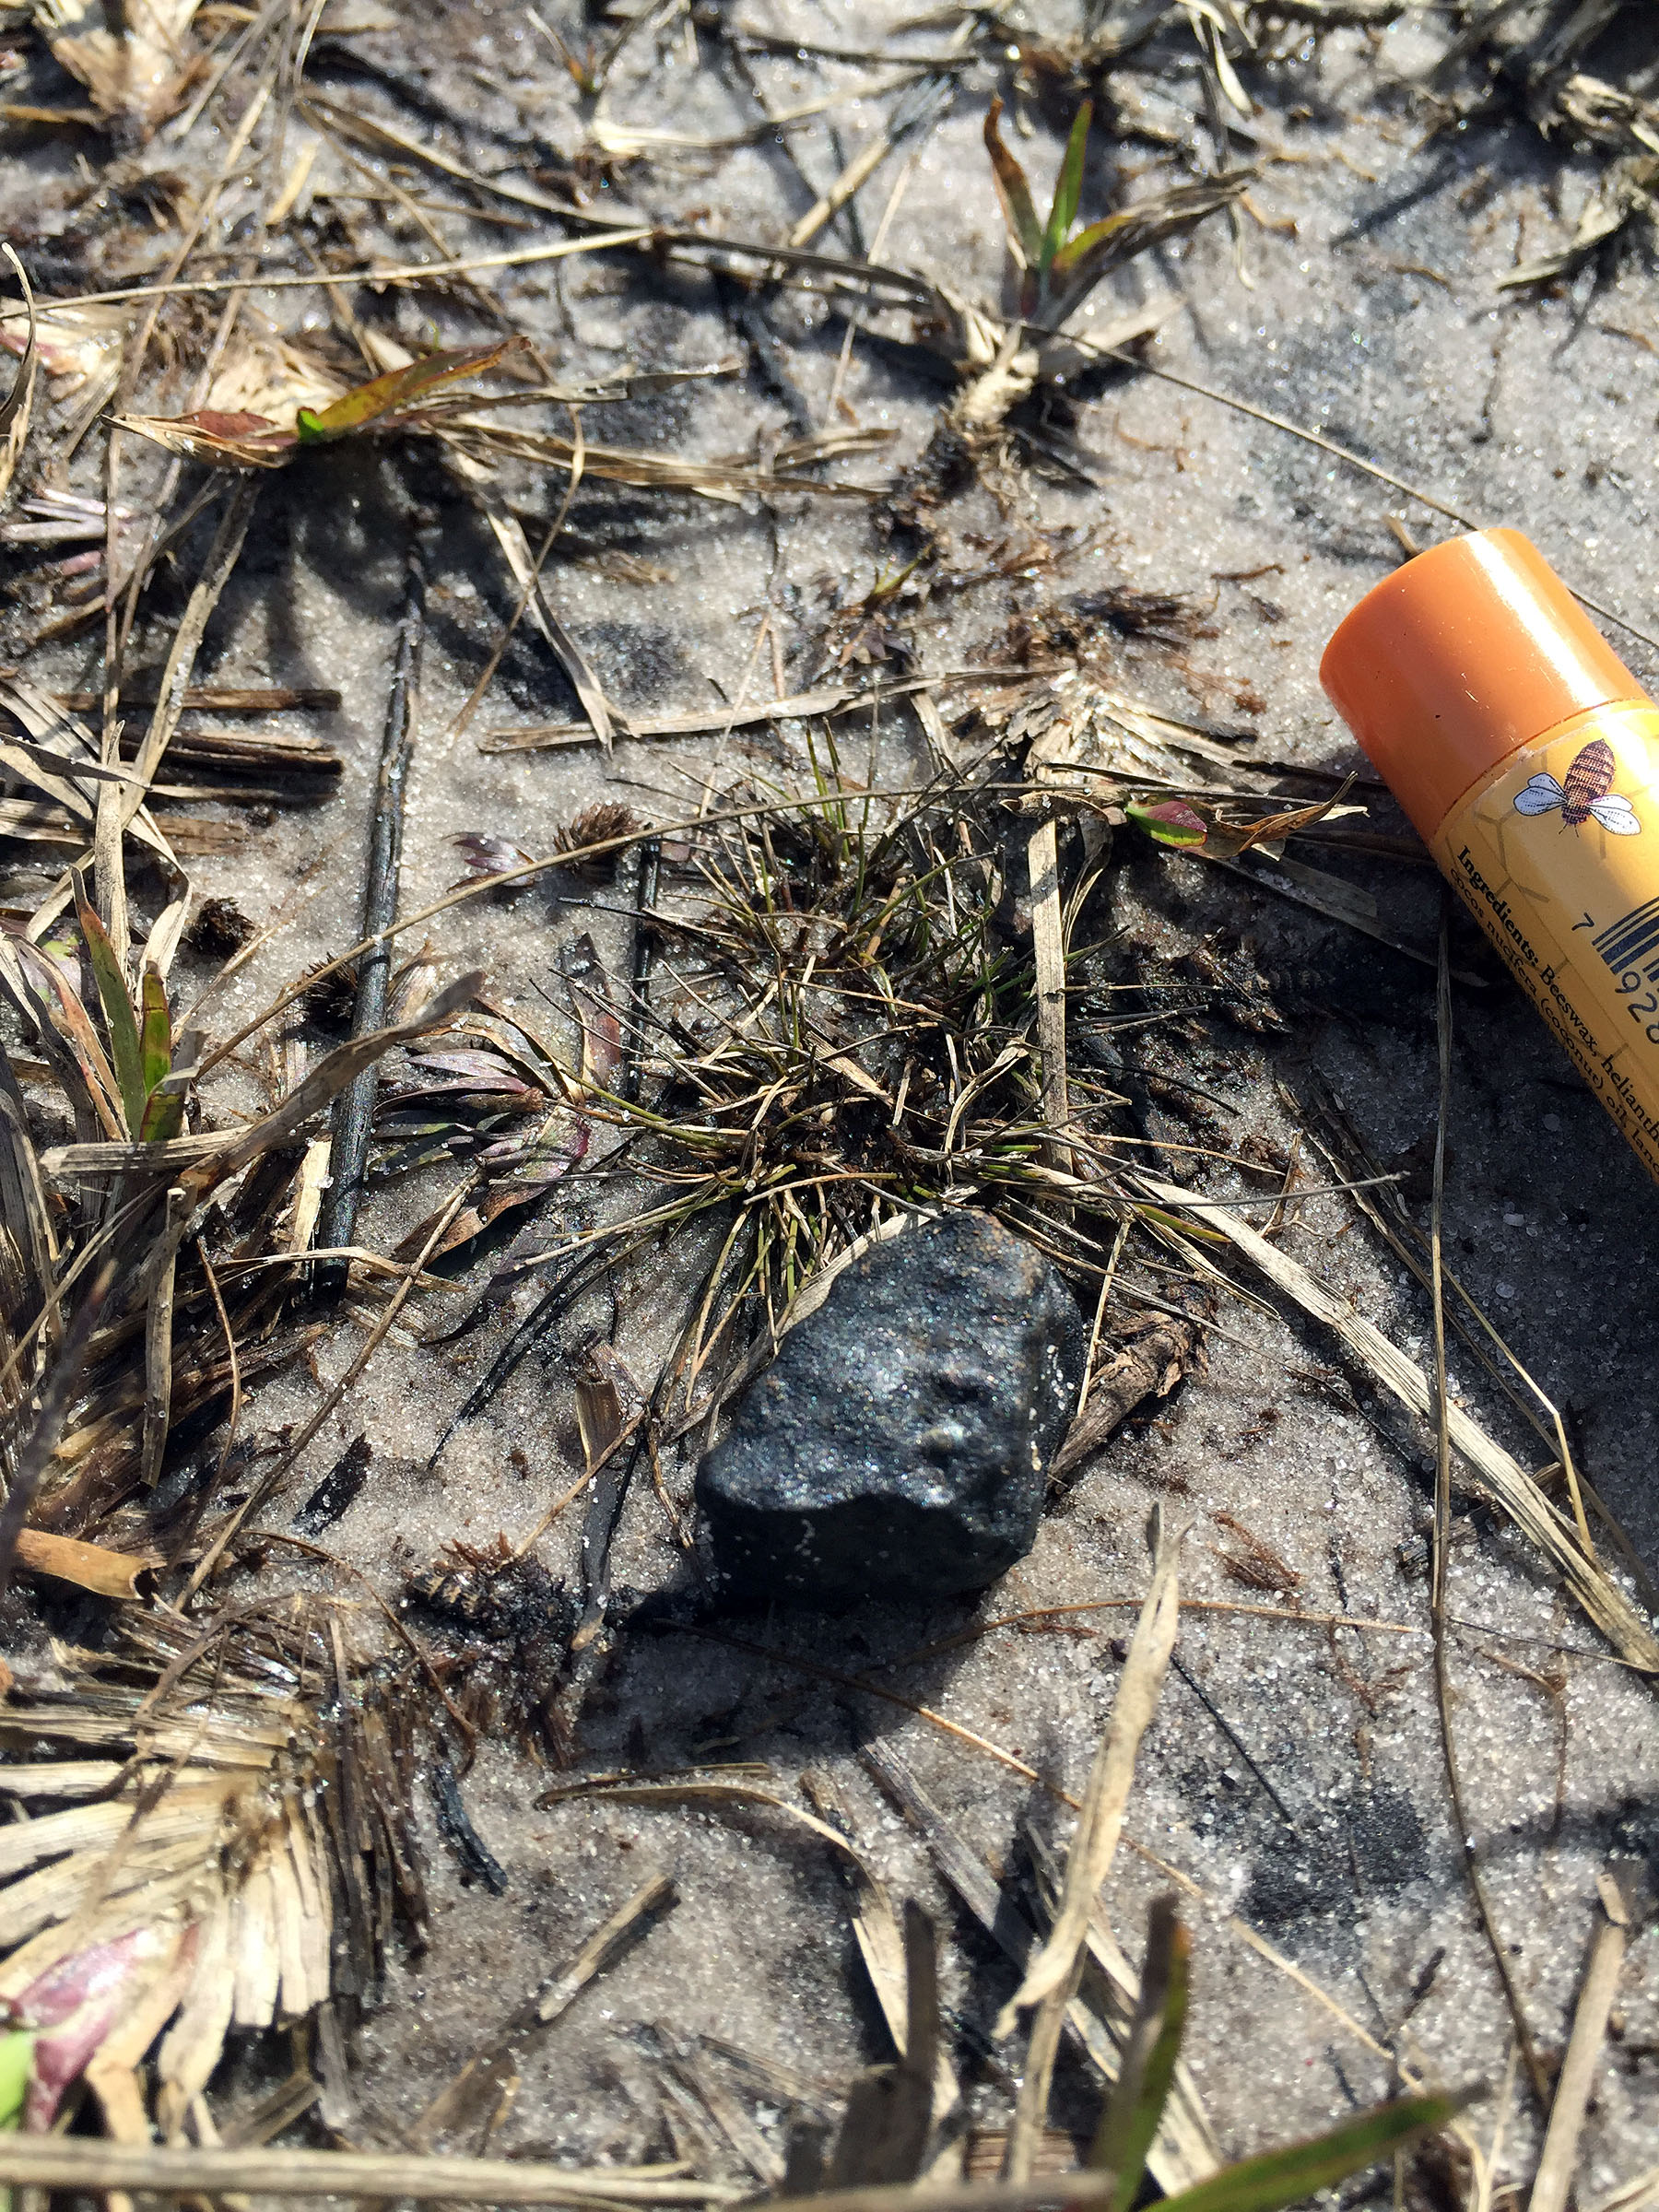 Meteorite Hunters Find 6 Space Rocks from Florida Fireball